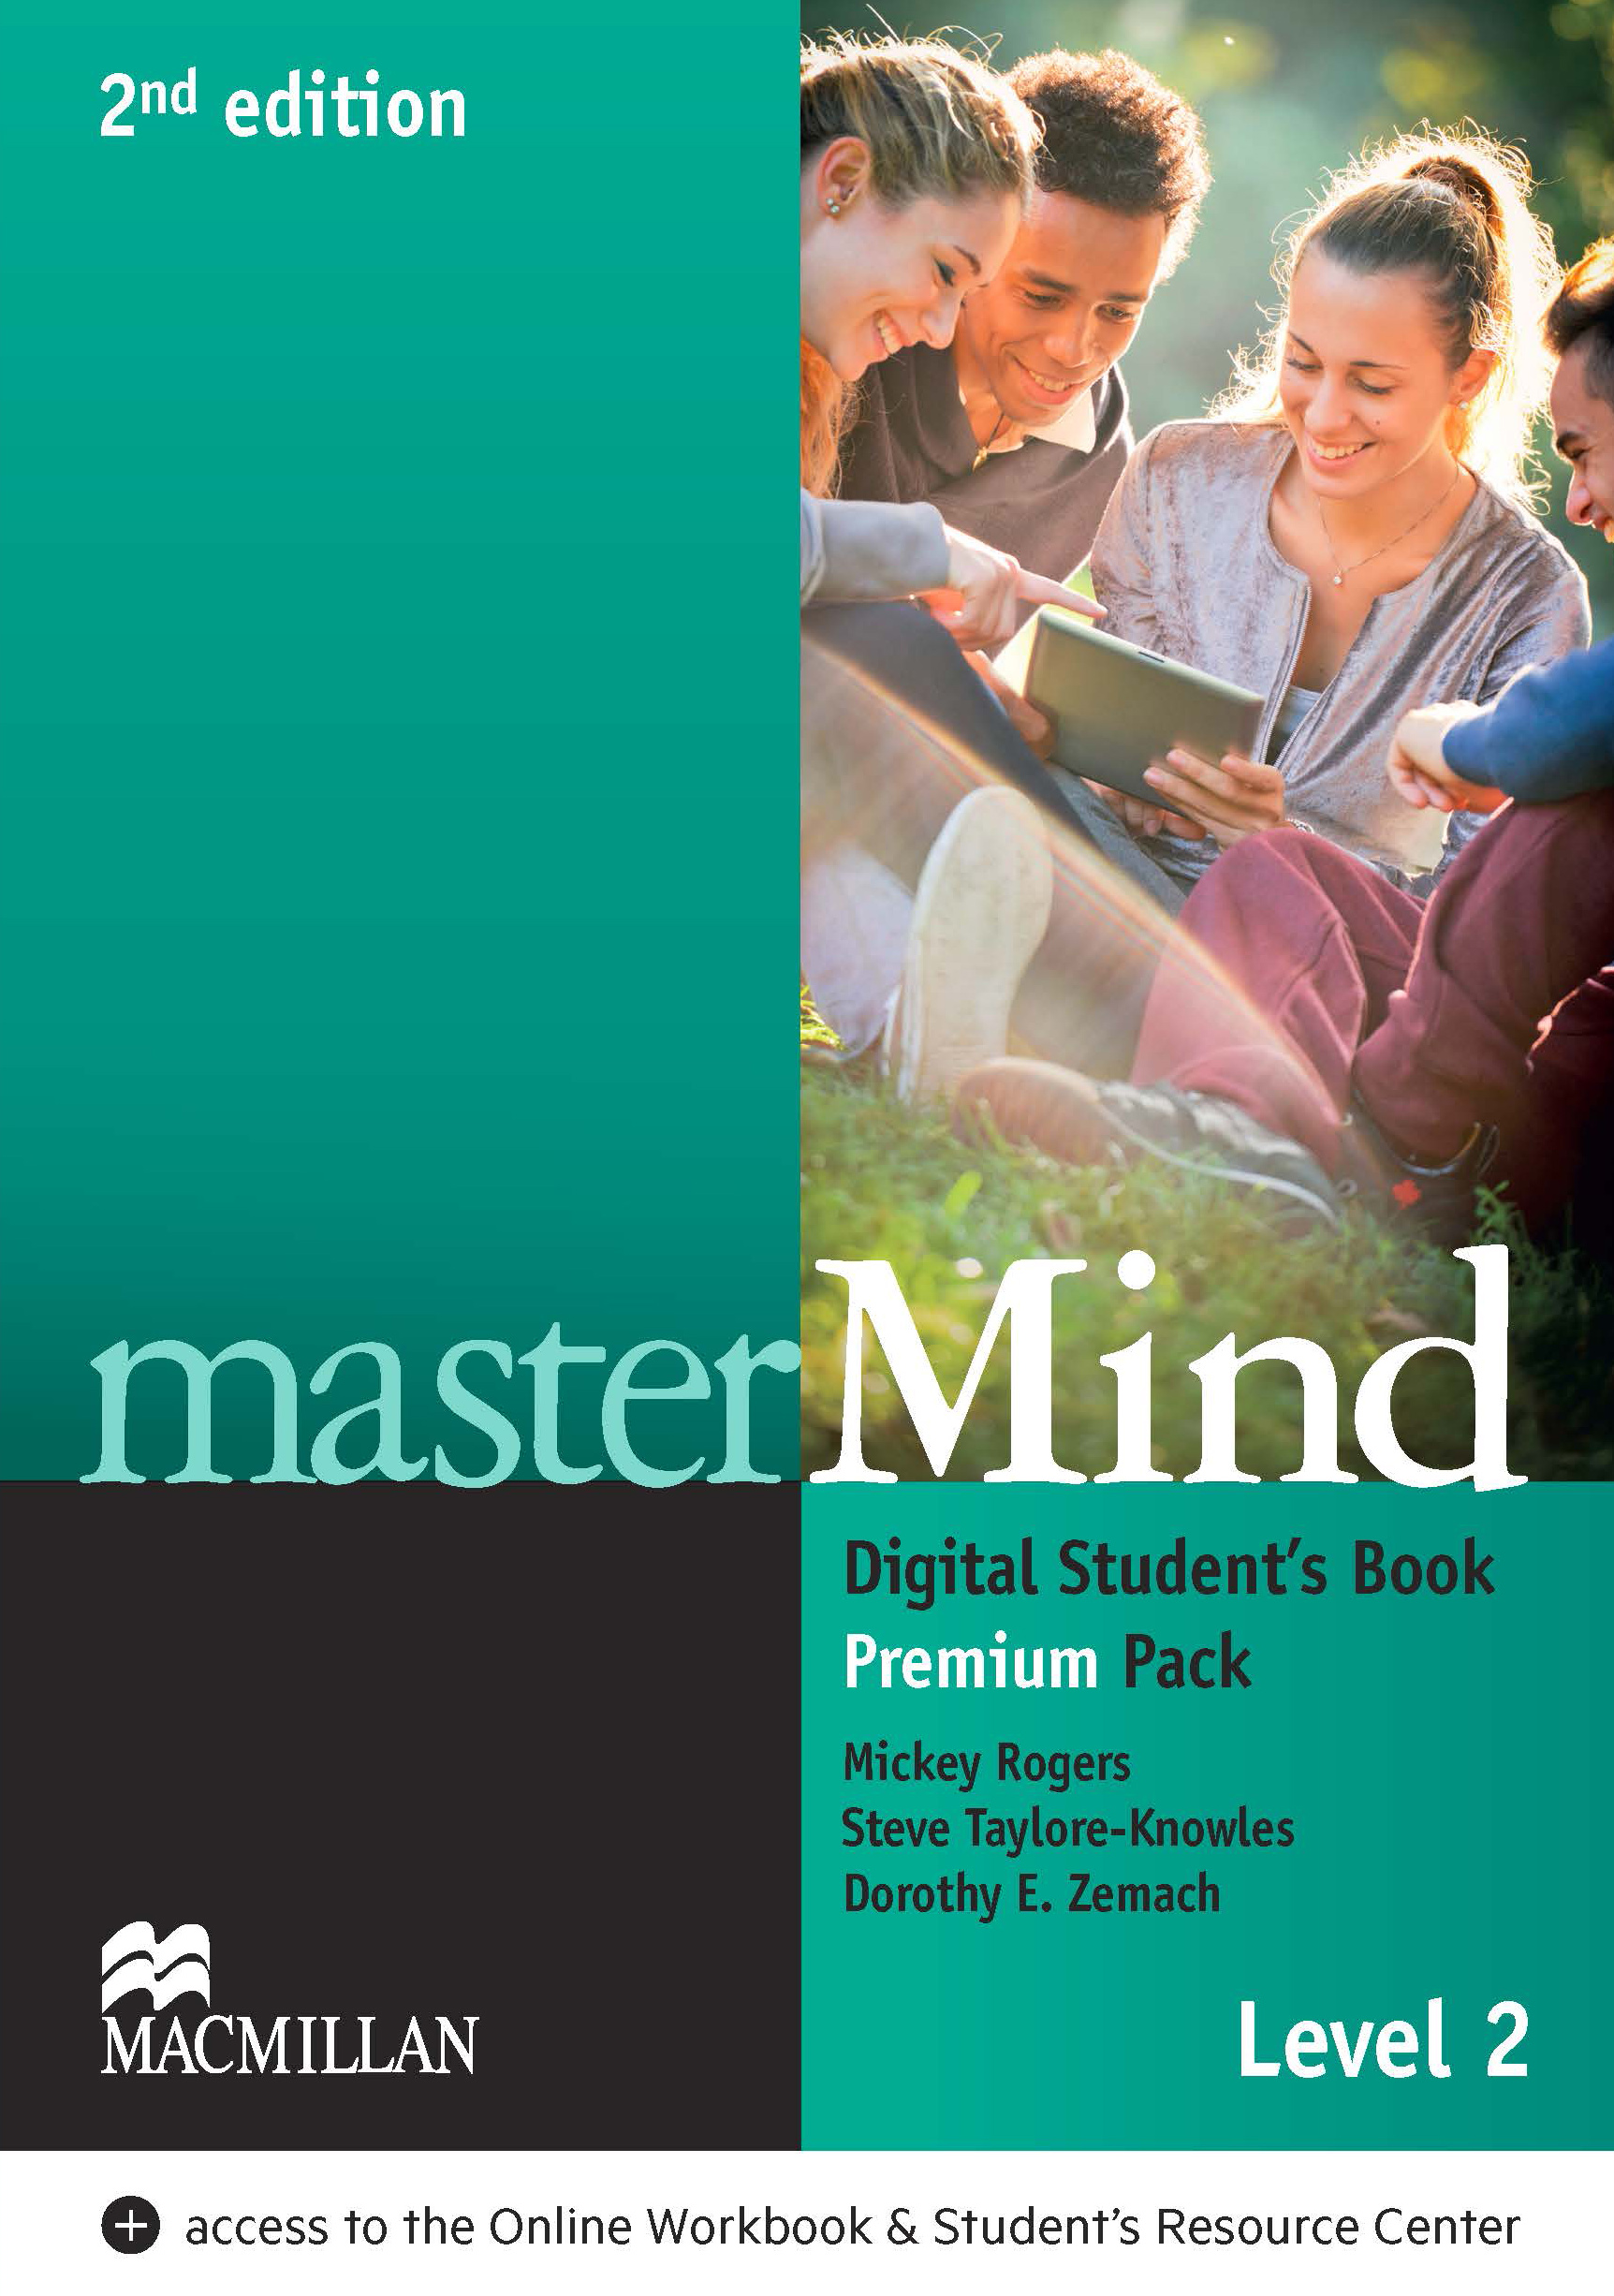 masterMind 2nd Edition Level 2 Digital Student